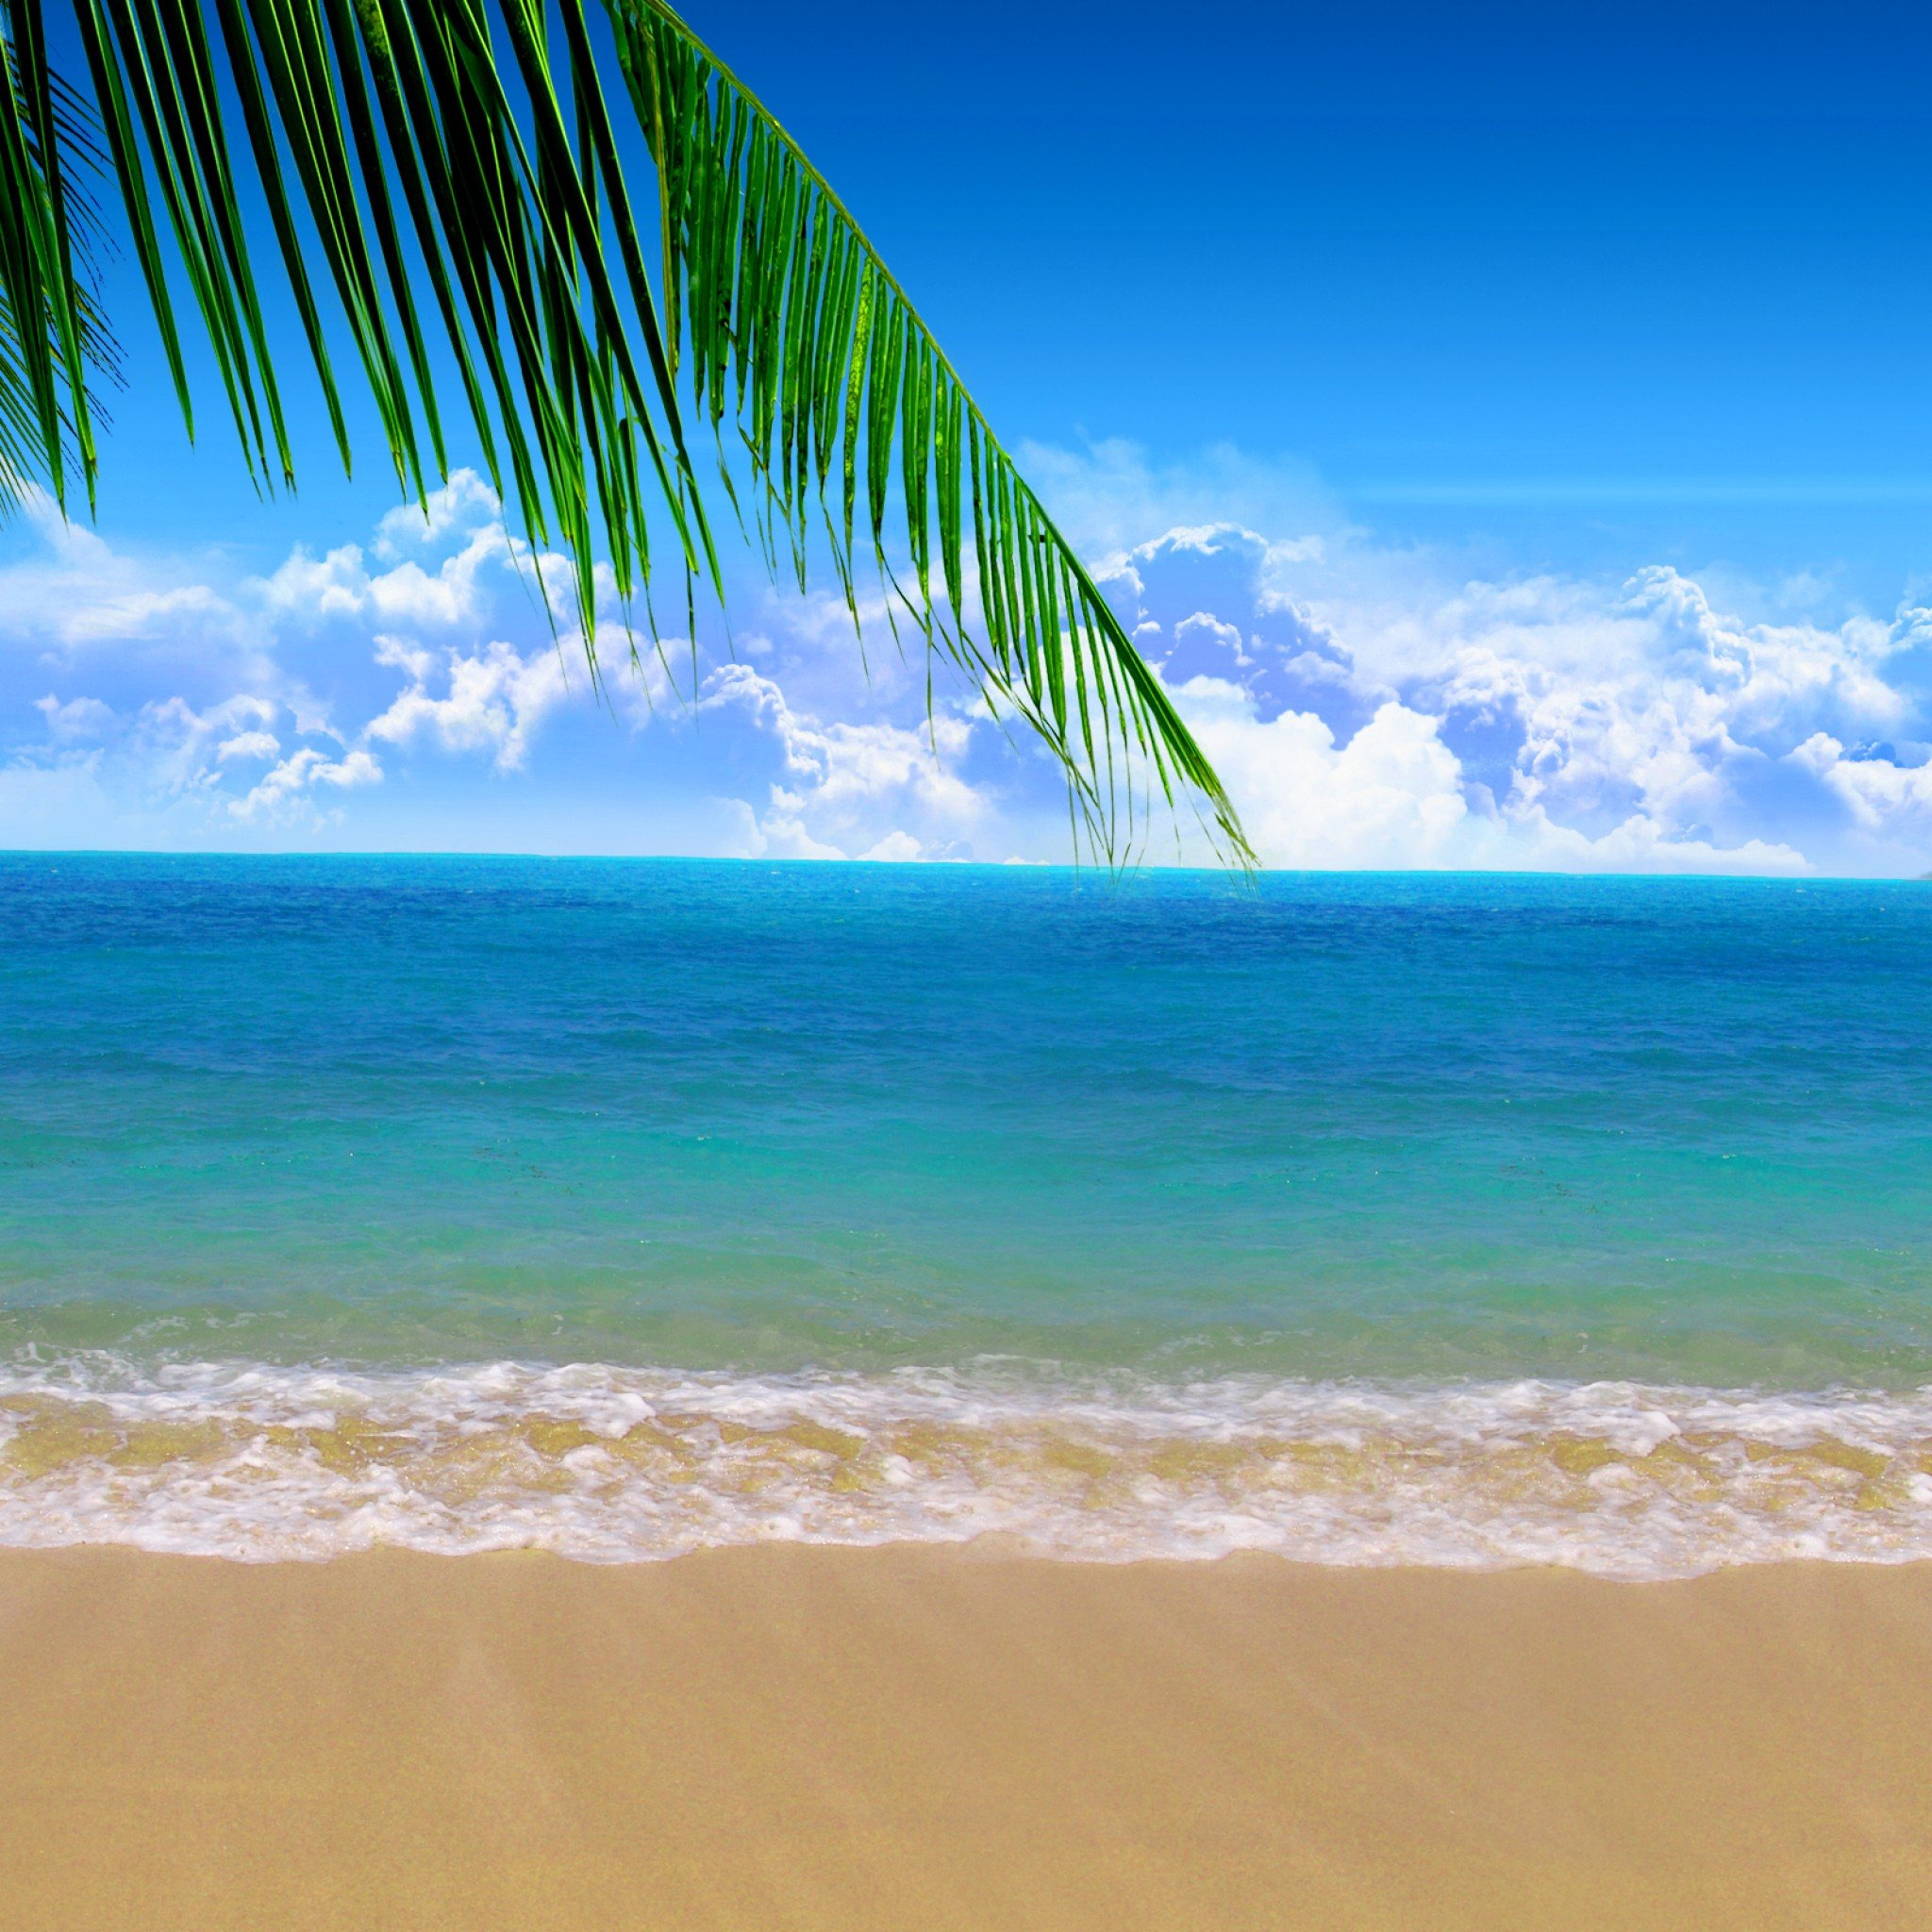 Summer Beach Wallpaper Search Results newdesktopwallpapersinfo 2048x2048